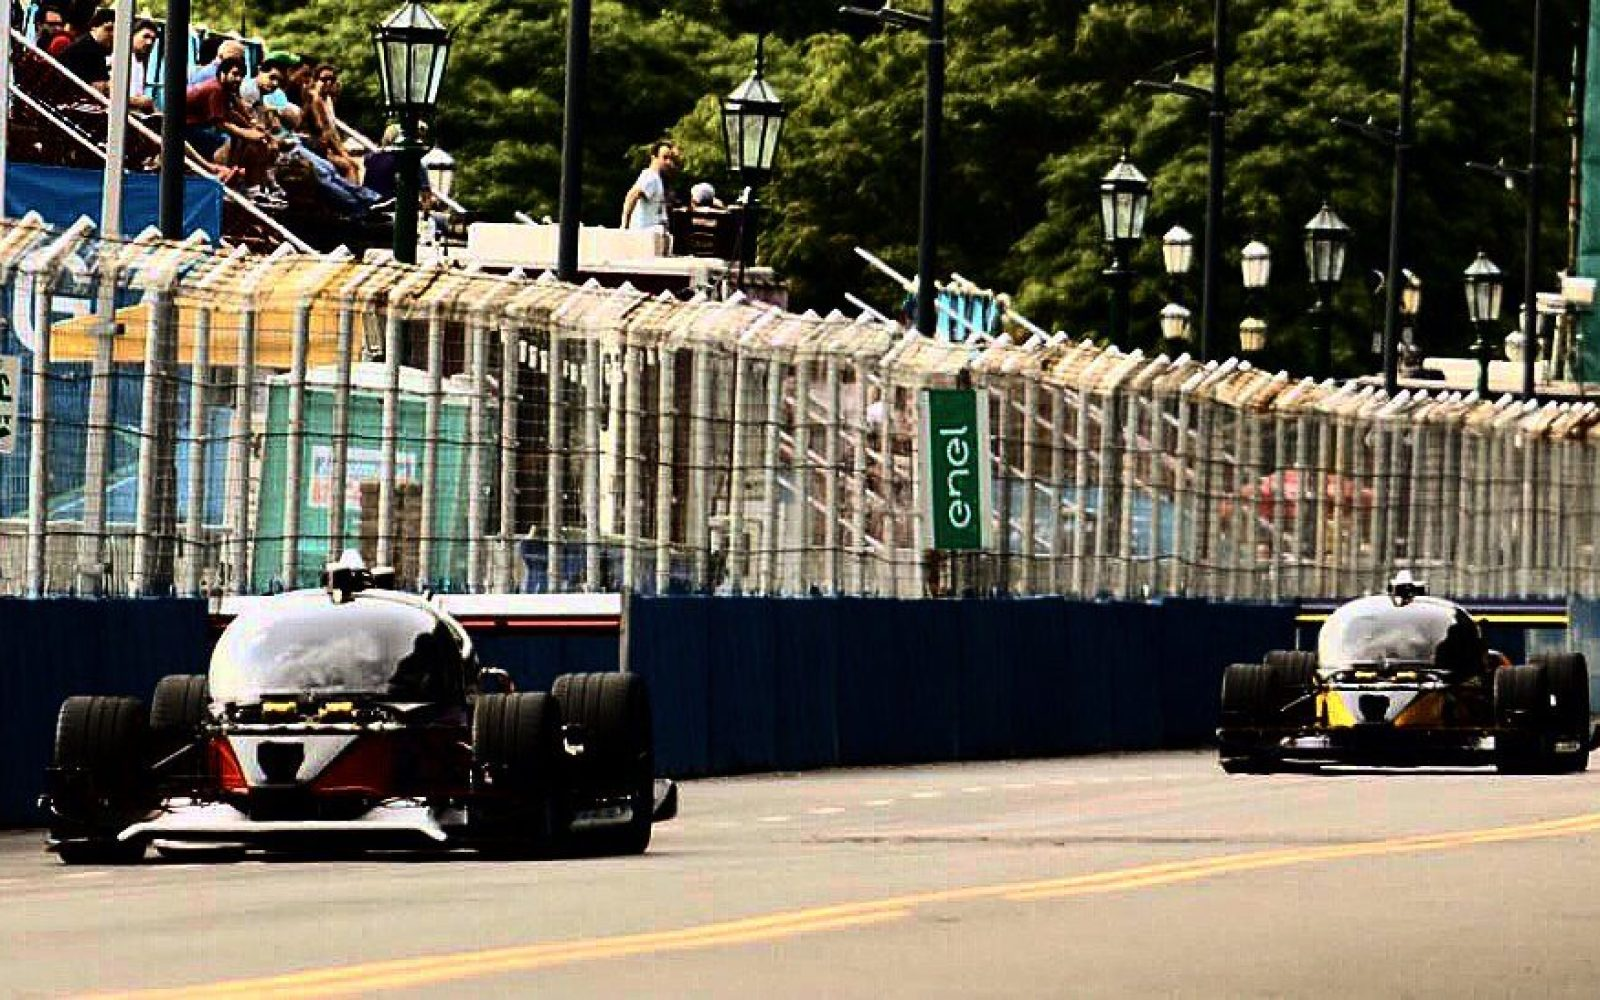 First self-driving car 'race' ends in a crash at the Buenos Aires Formula E ePrix; two cars enter, one car survives